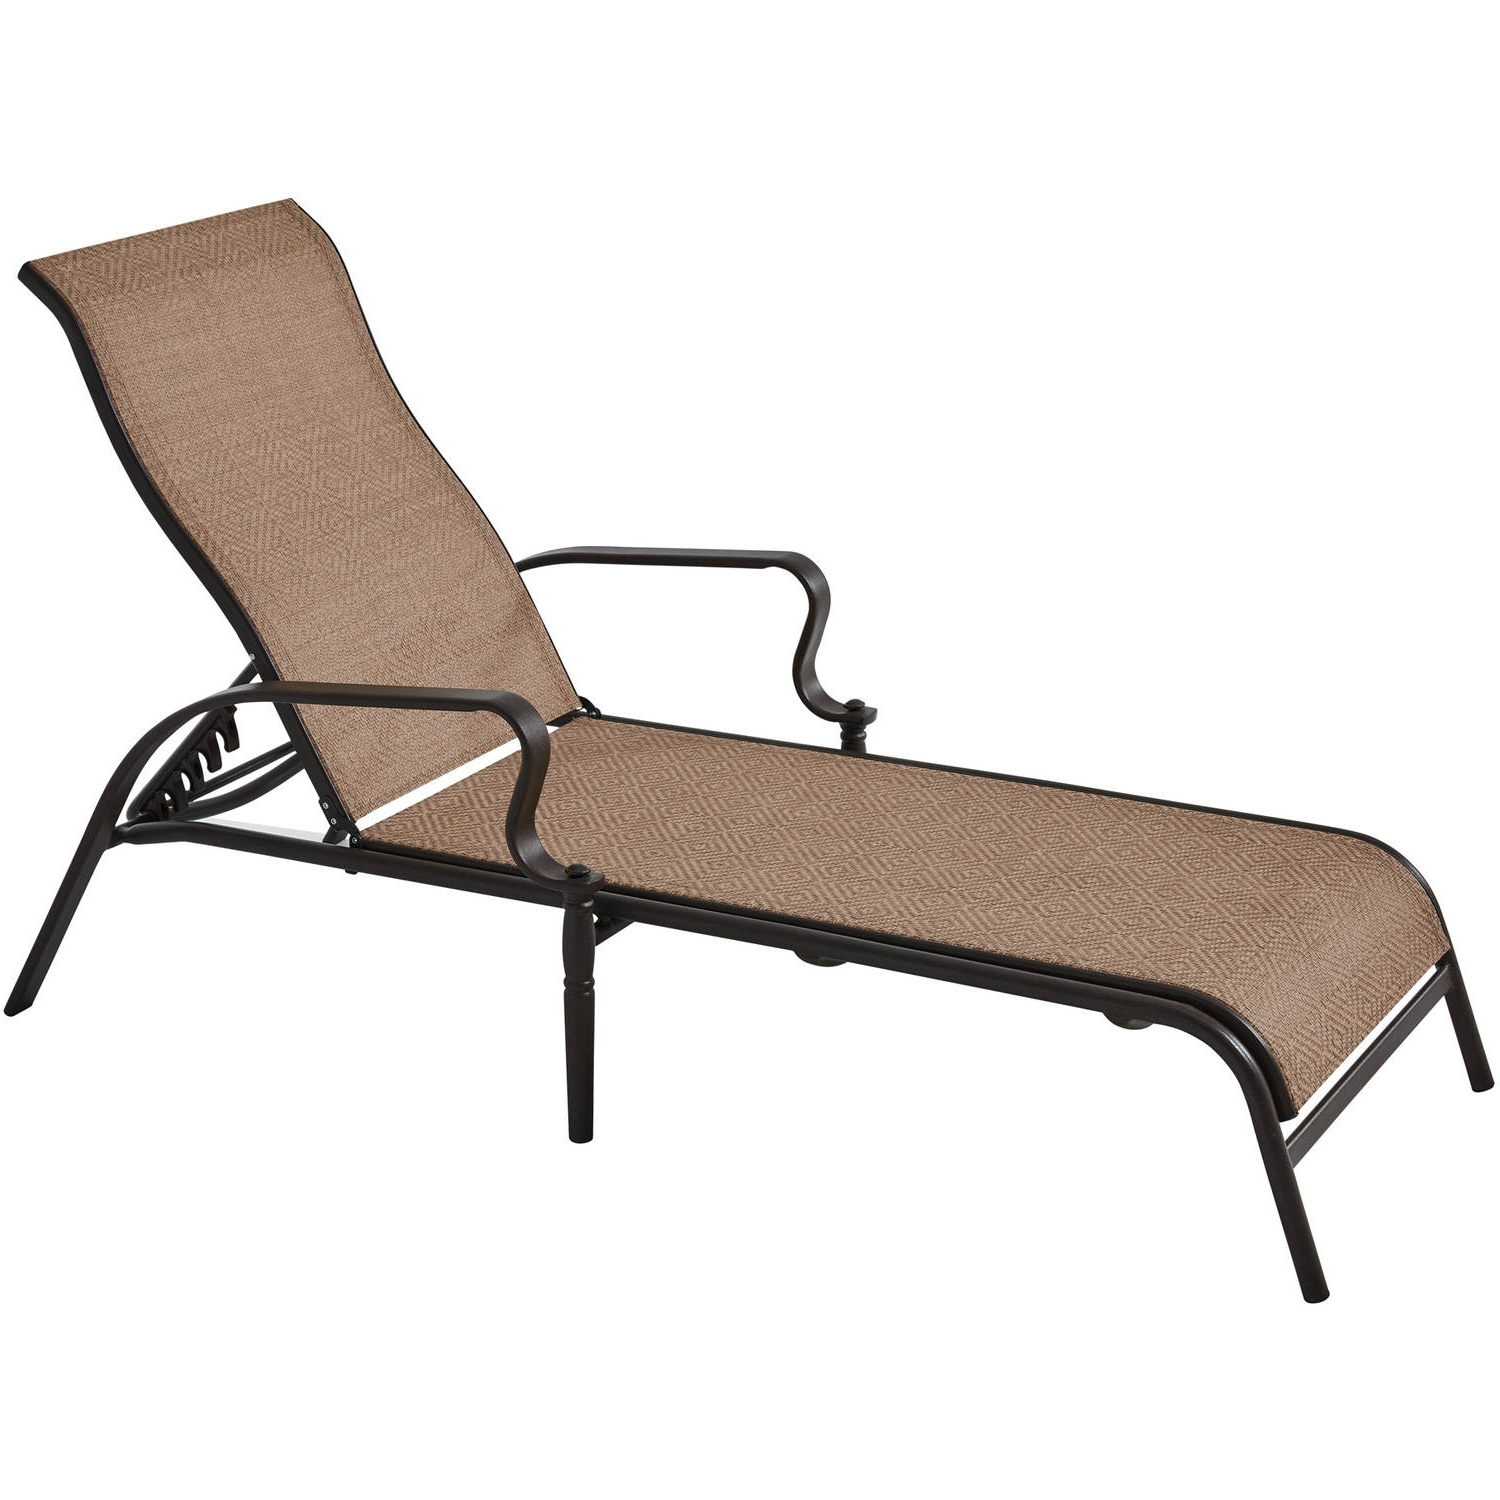 Latest Lounge Chair : Best Outdoor Lounge Chair Sling Chaise Lounge Inside Armless Outdoor Chaise Lounge Chairs (View 8 of 15)